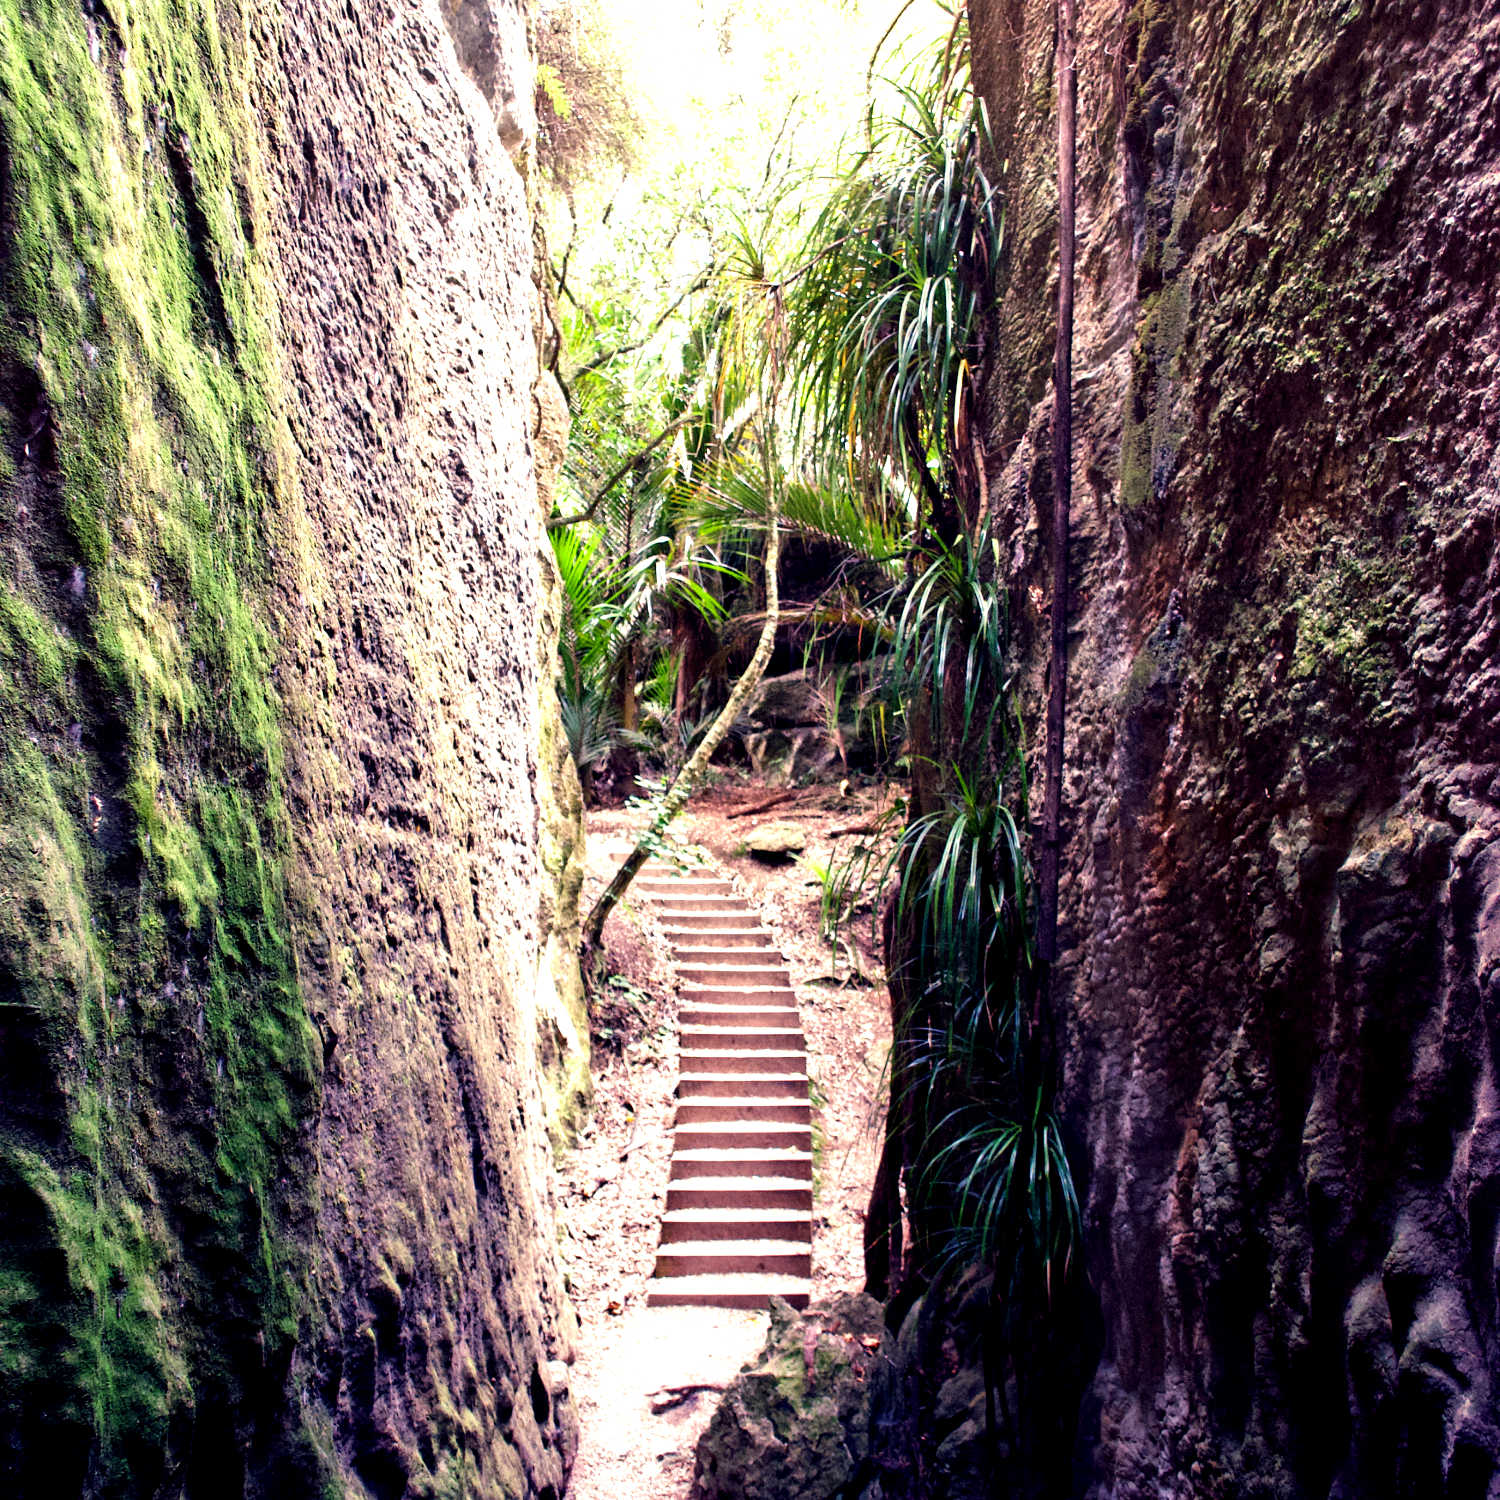 The Grove Scenic Reserve is a walking track which makes its way through a series of limestone canyons in Takaka, the Tasman District, New Zealand